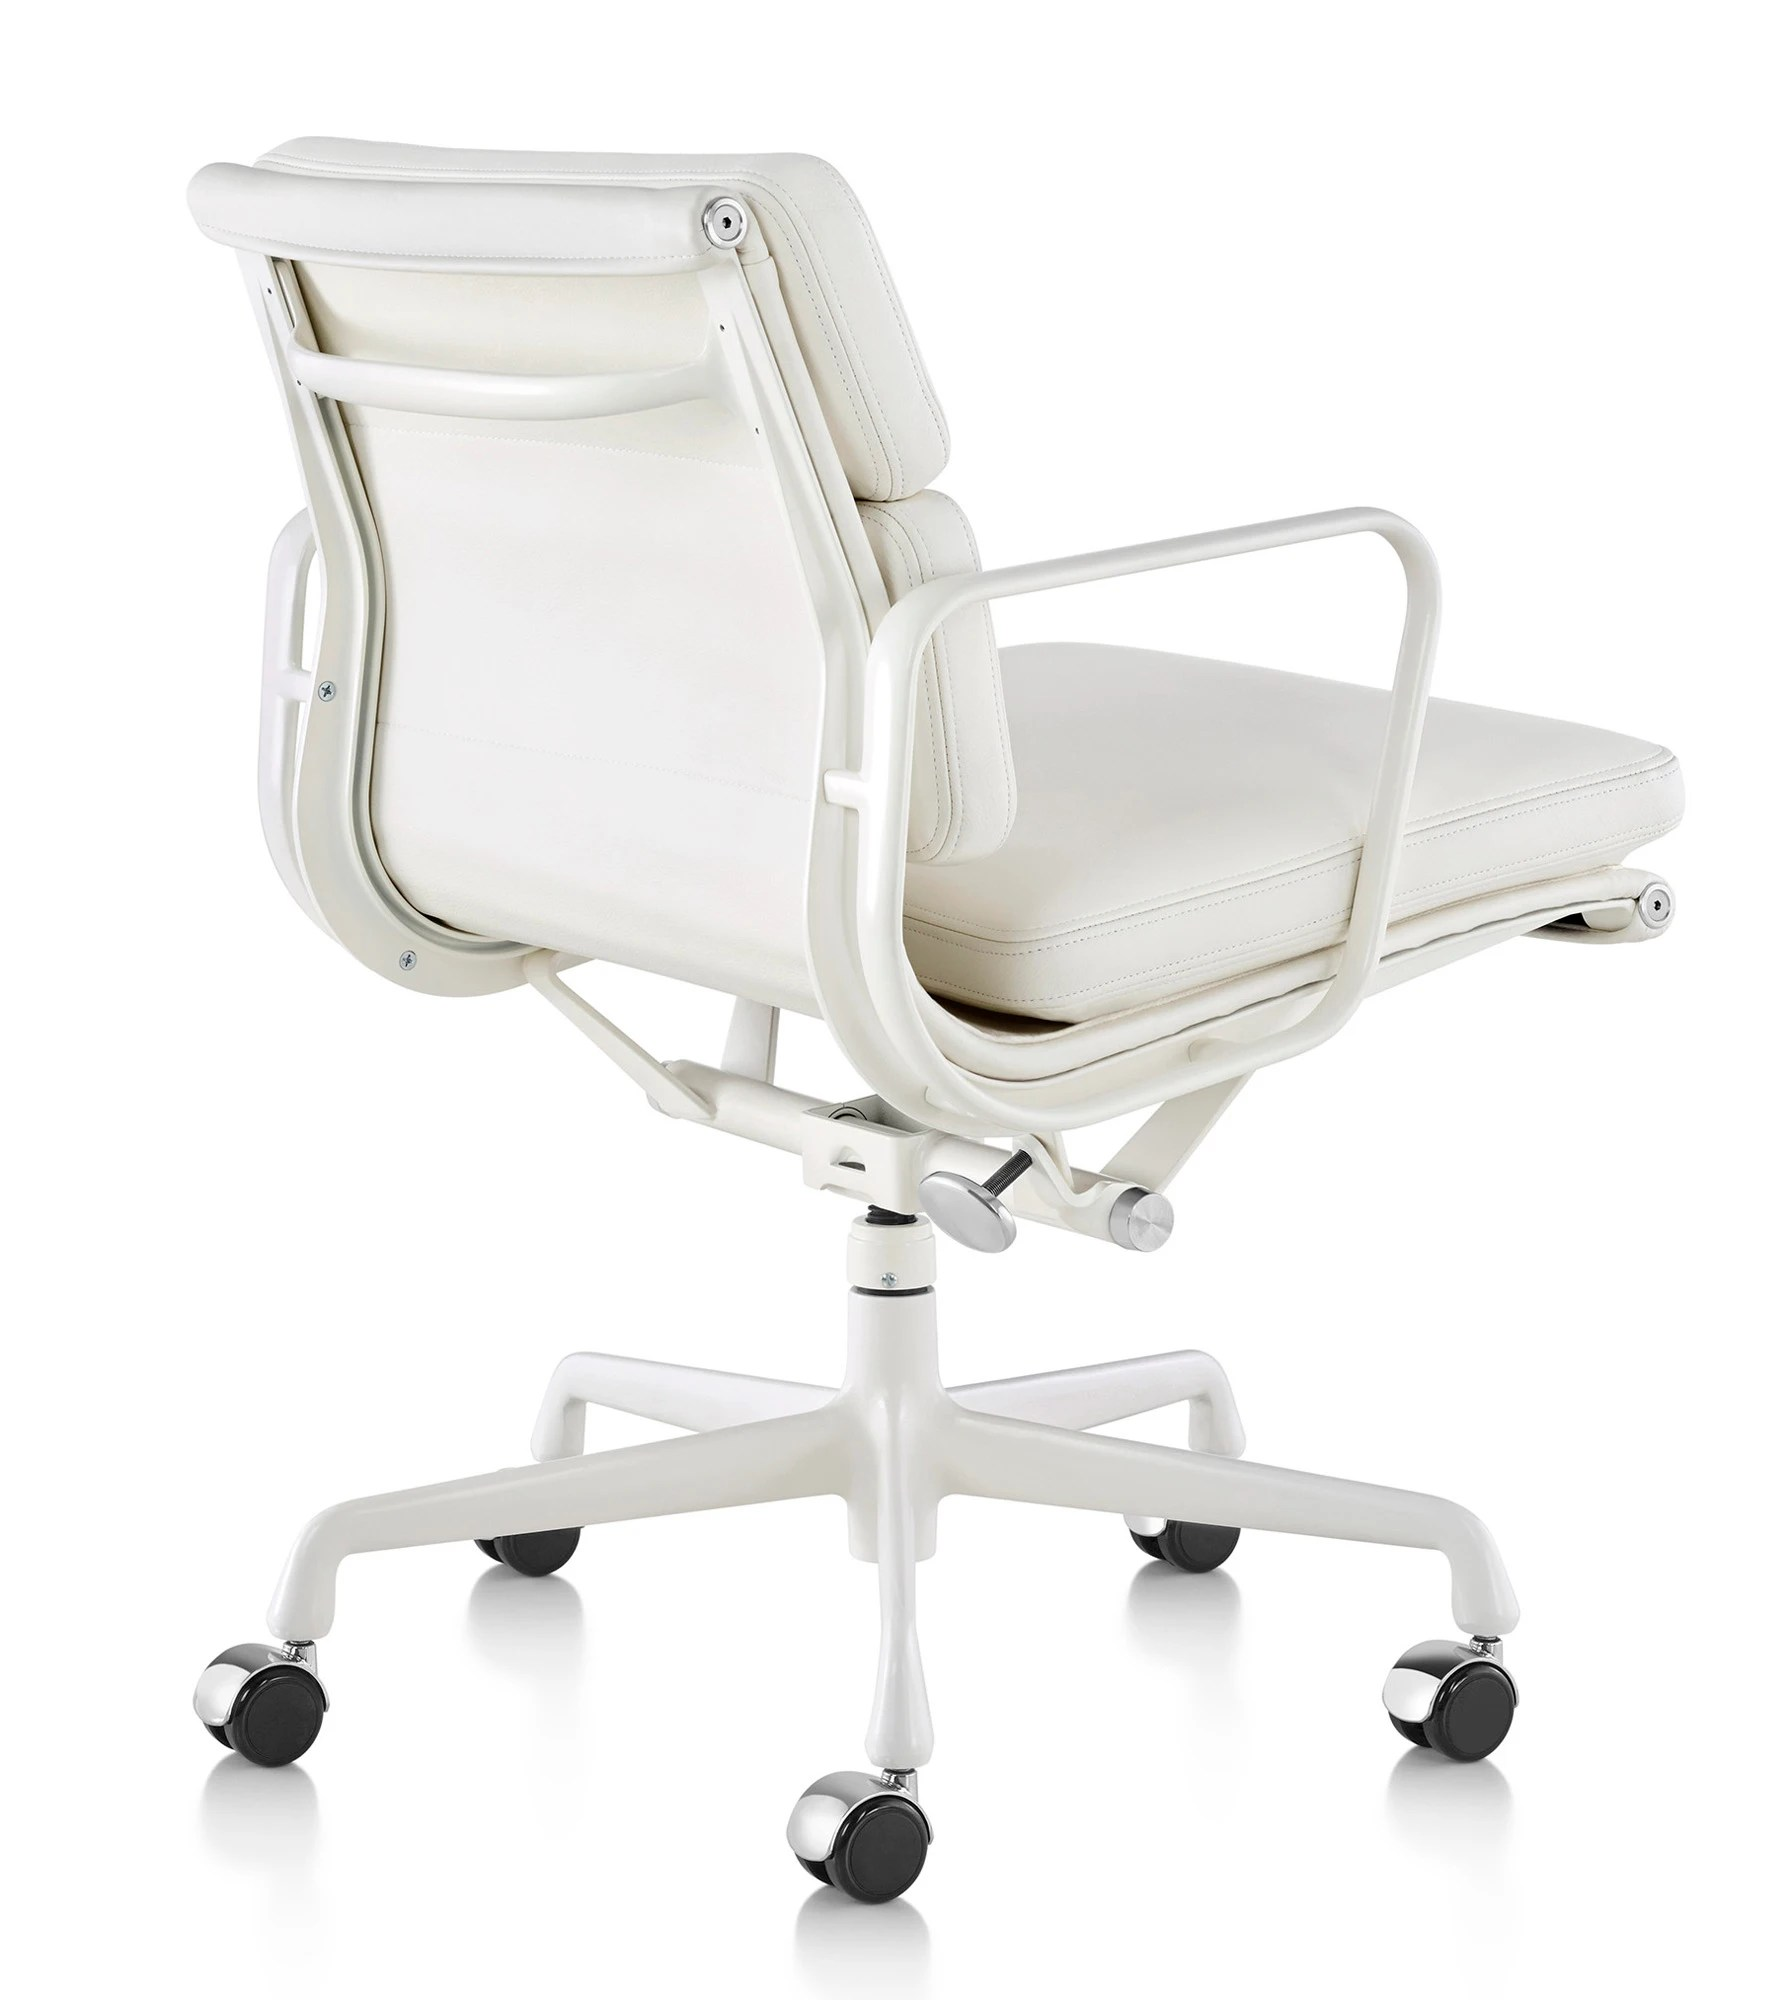 Eames Soft Pad Management Chair Herman Miller Eames Soft Pad Chair Management Chair